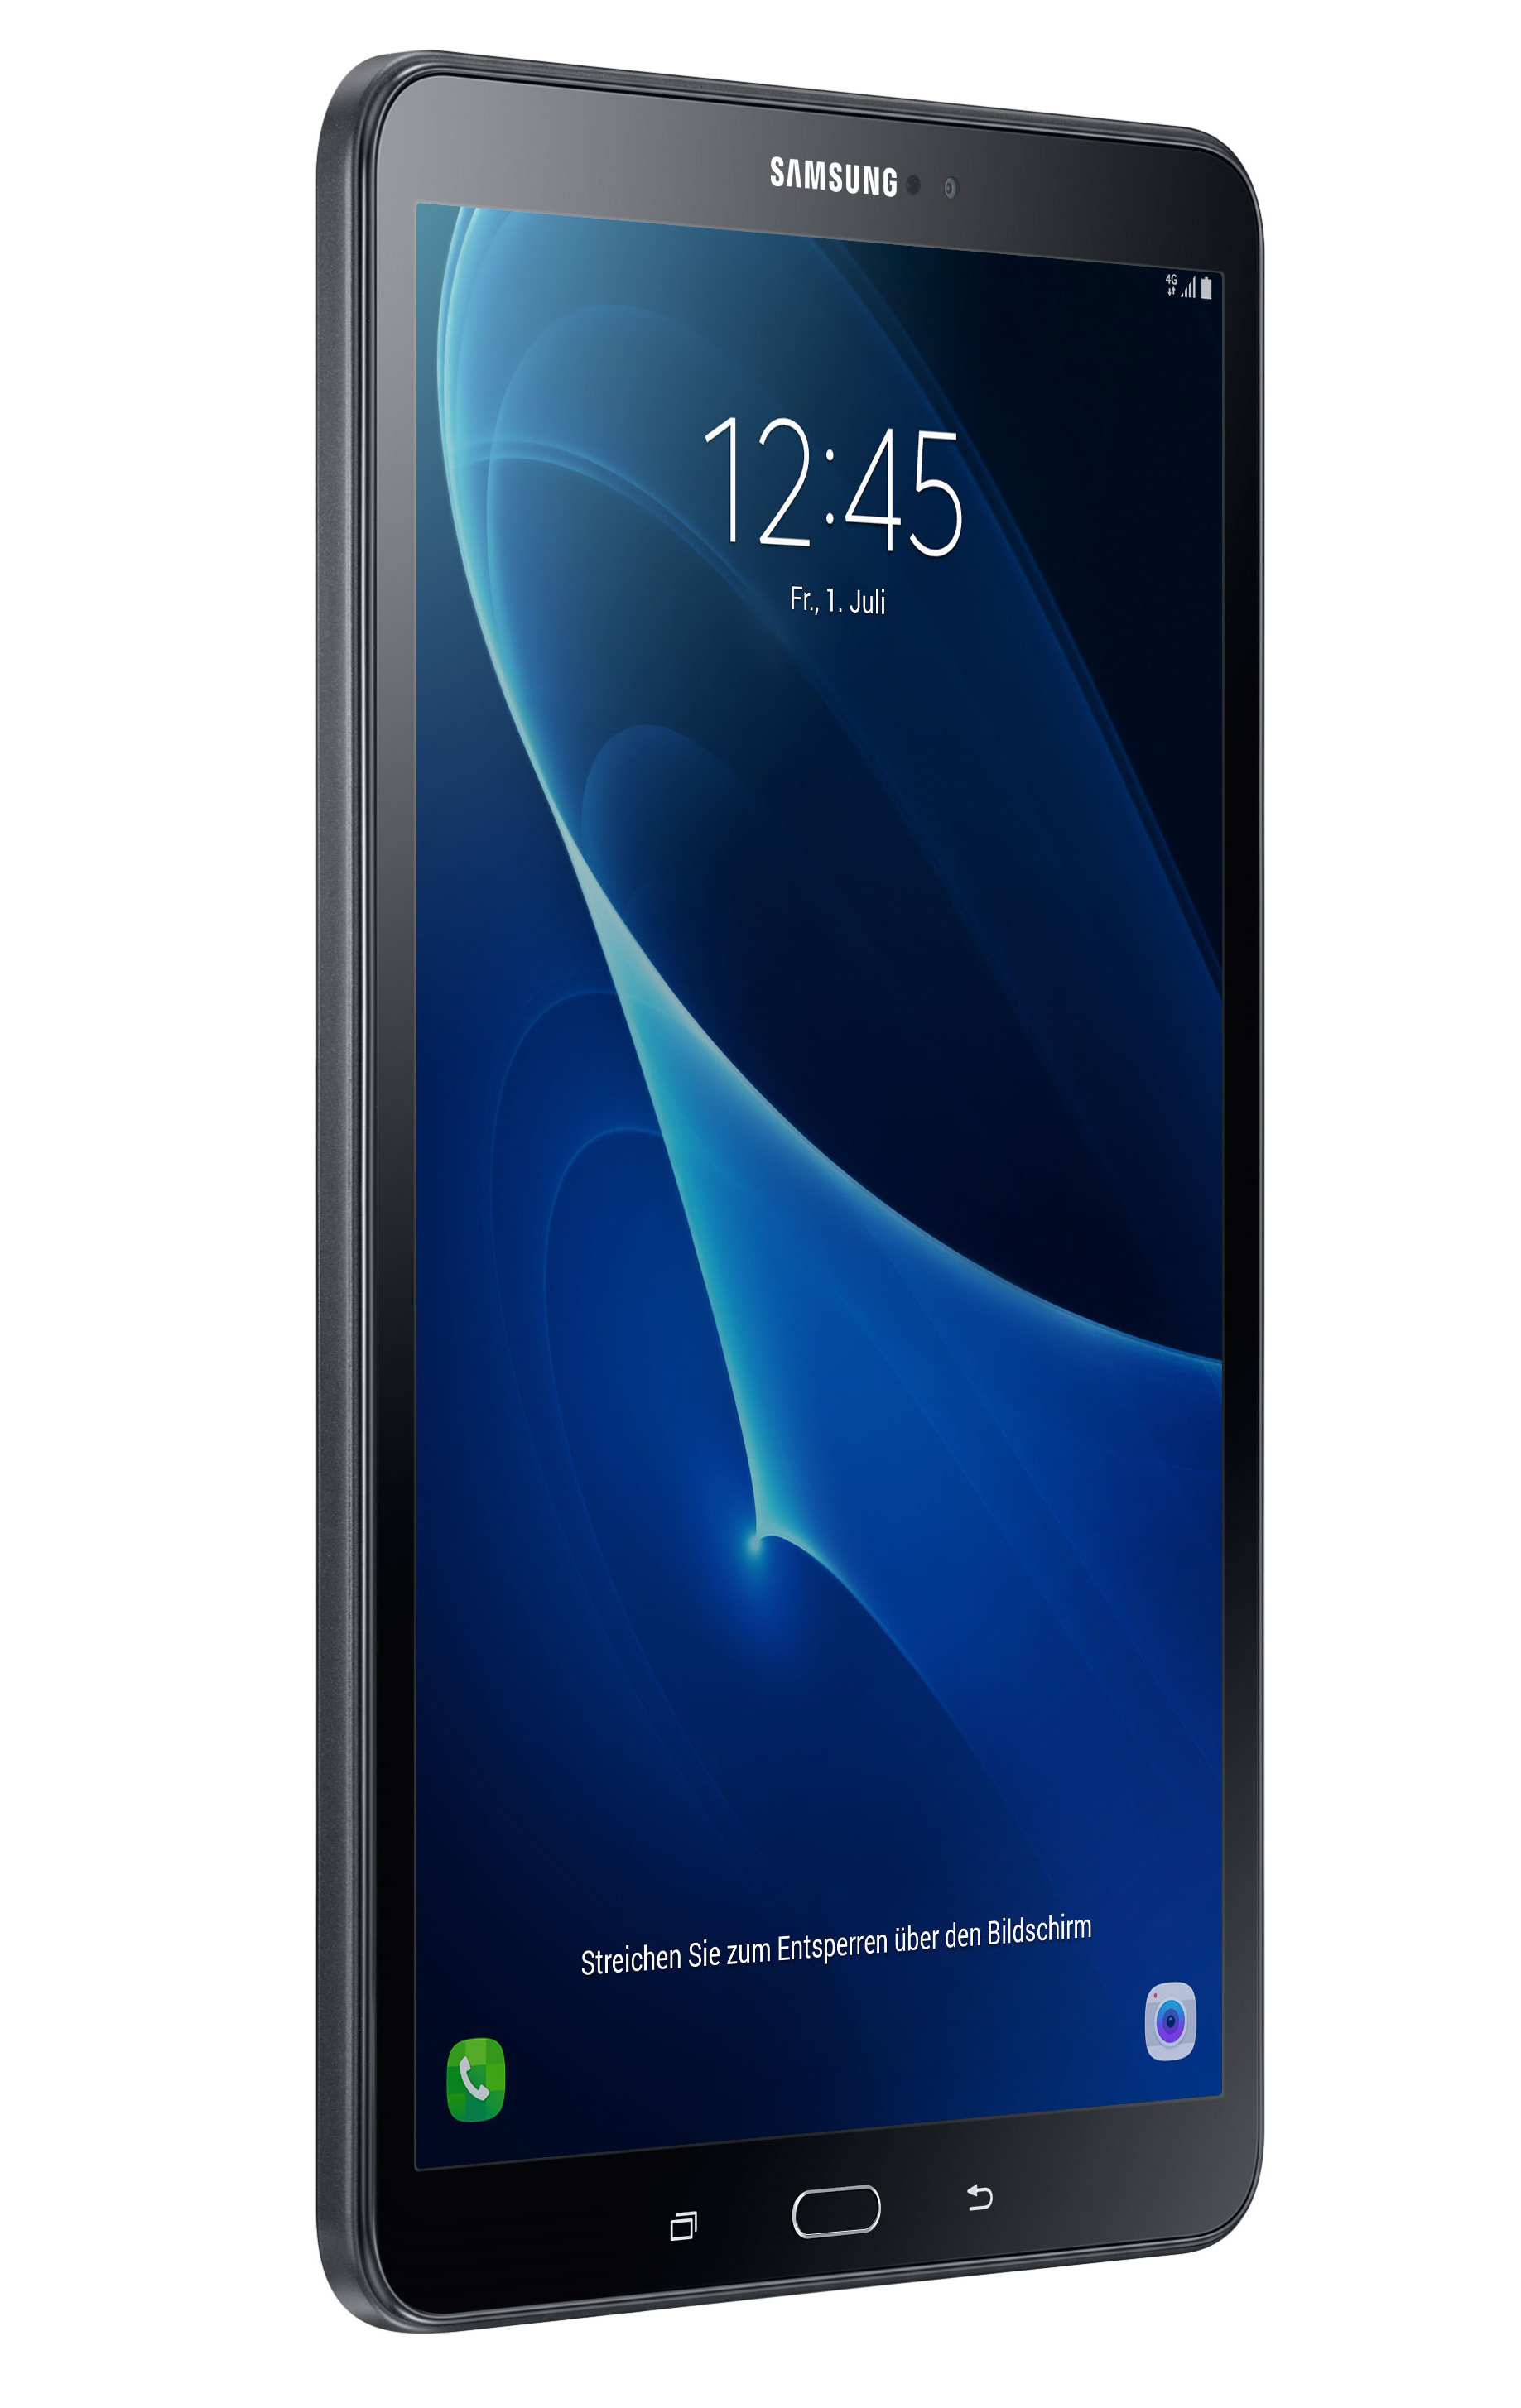 90142a23737 Samsung Galaxy Tab A 10.1 (2016) Tablet Review - NotebookCheck.net ...